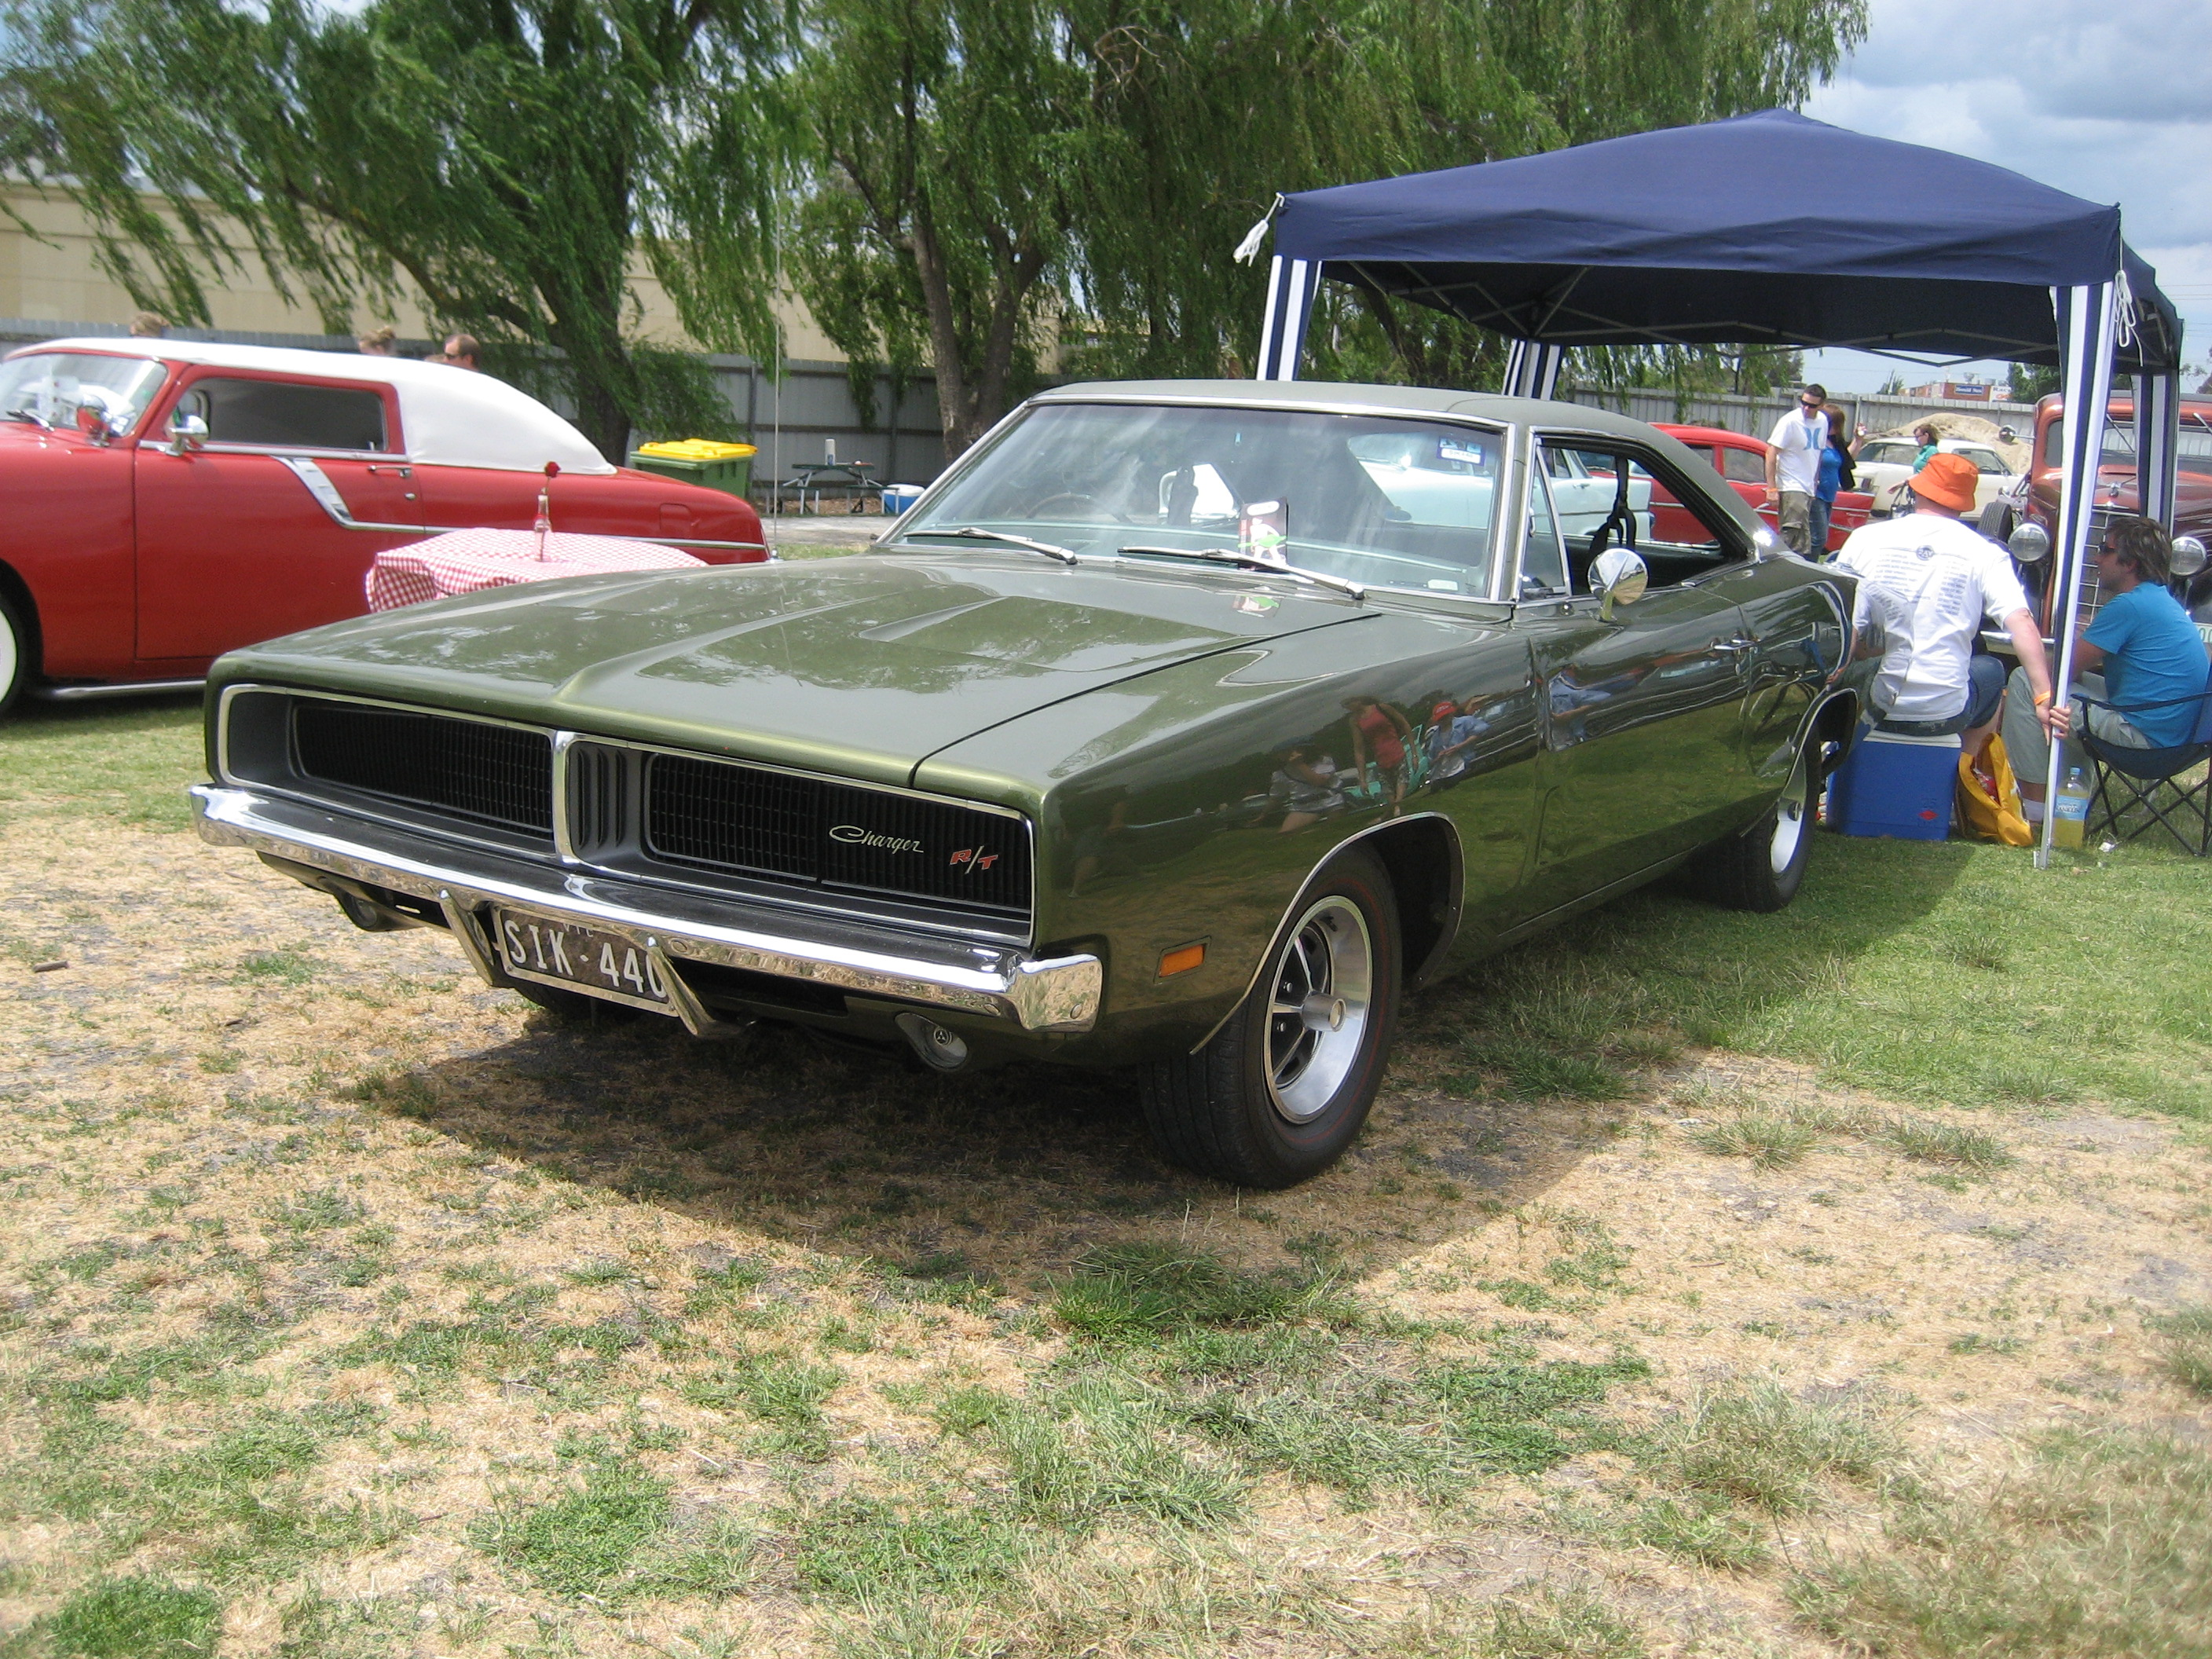 22dd12b95cb6bb61cbb0b23dfa17c94c further Dodge 318 Engine together with Dodge Magnum Performance Engines furthermore Dodge 5 besides File 1969 Dodge Charger RT 440. on dodge 318 magnum engine